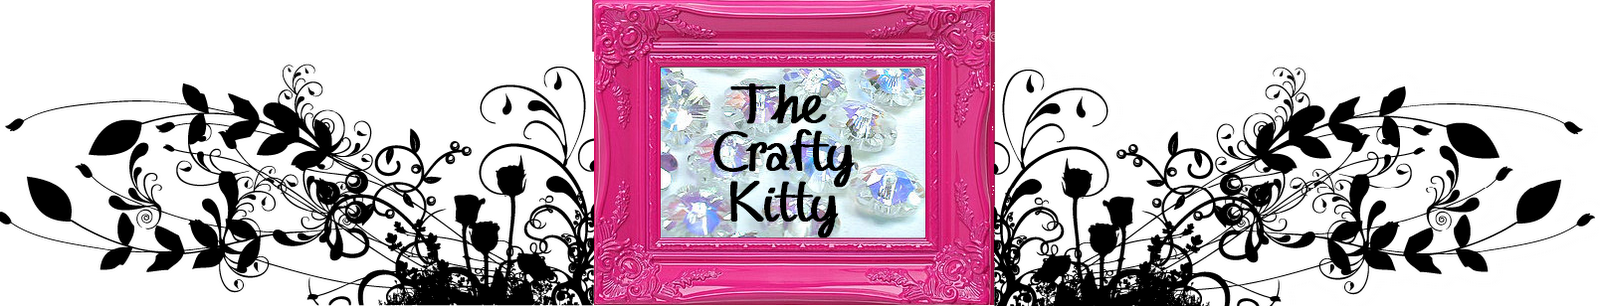 The Crafty Kitty